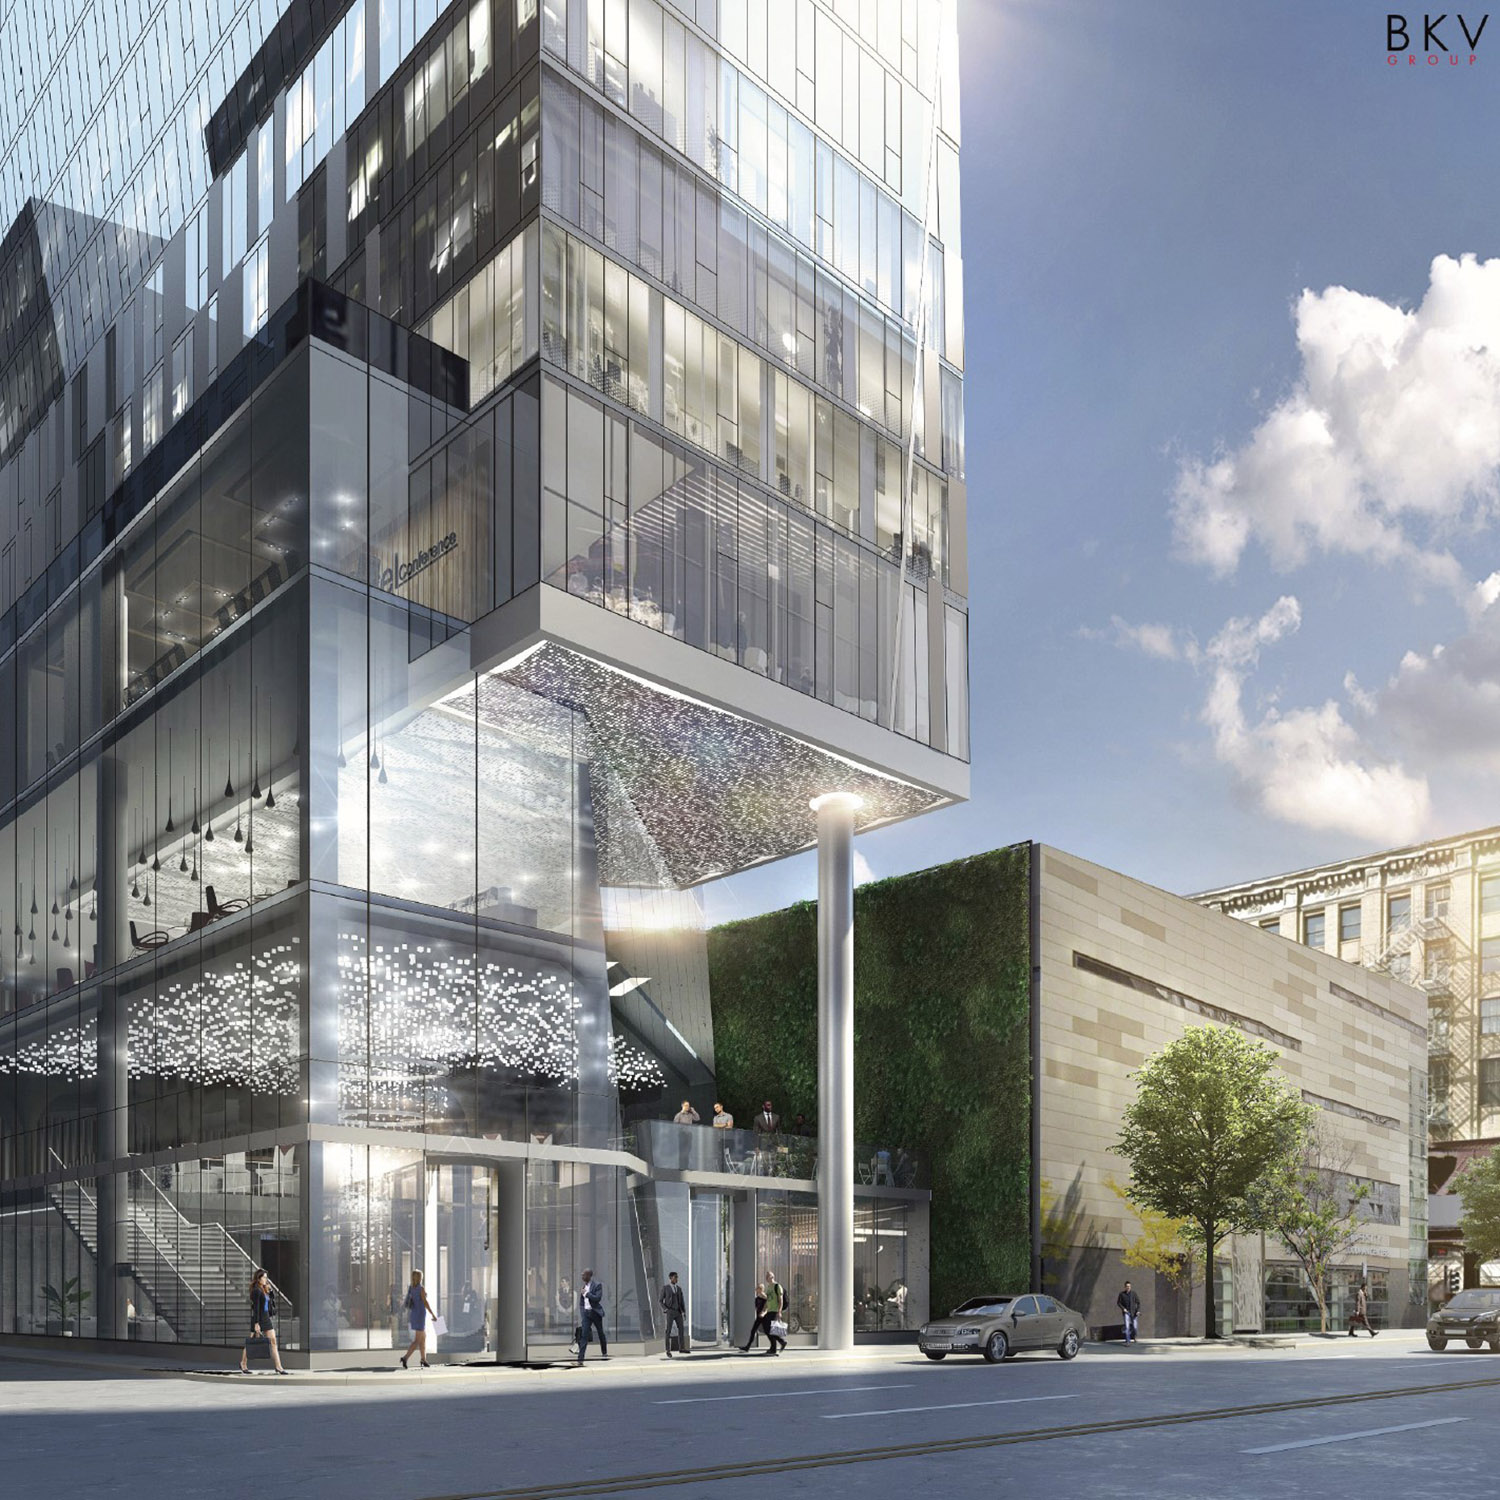 Street View of 525 S Wabash Avenue. Rendering by BKV Group